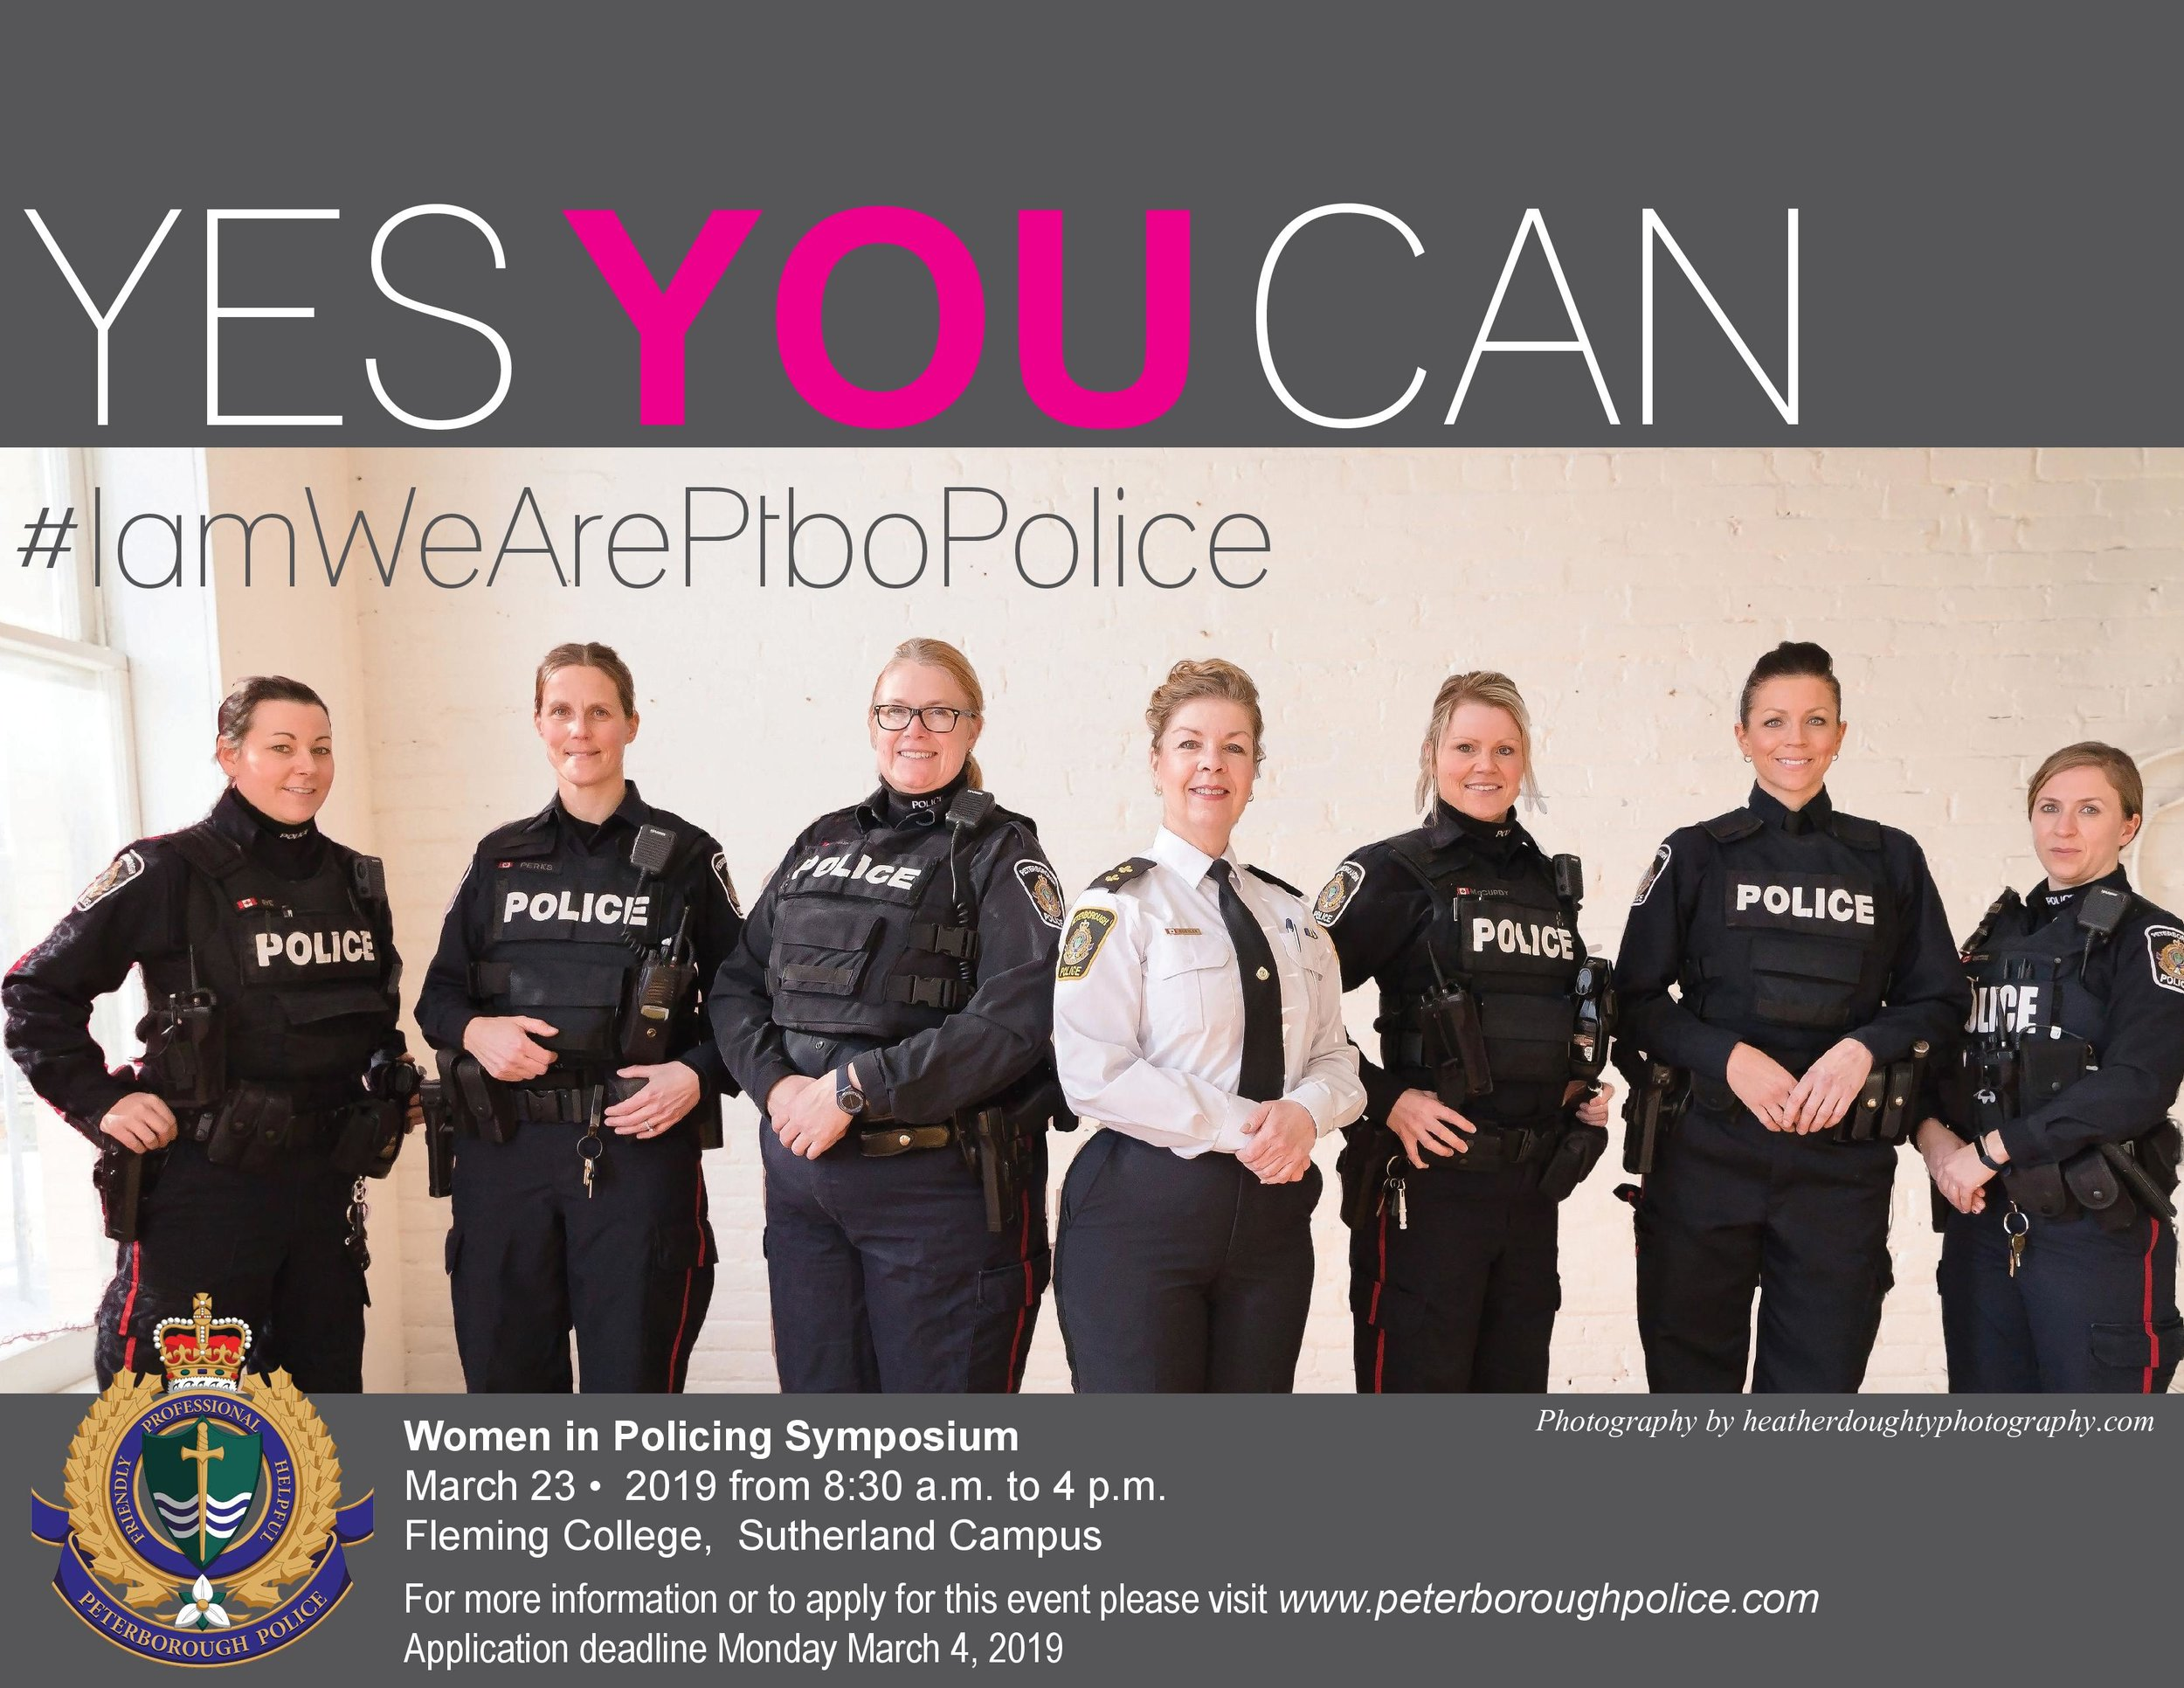 Poster courtesy Peterborough Police Service